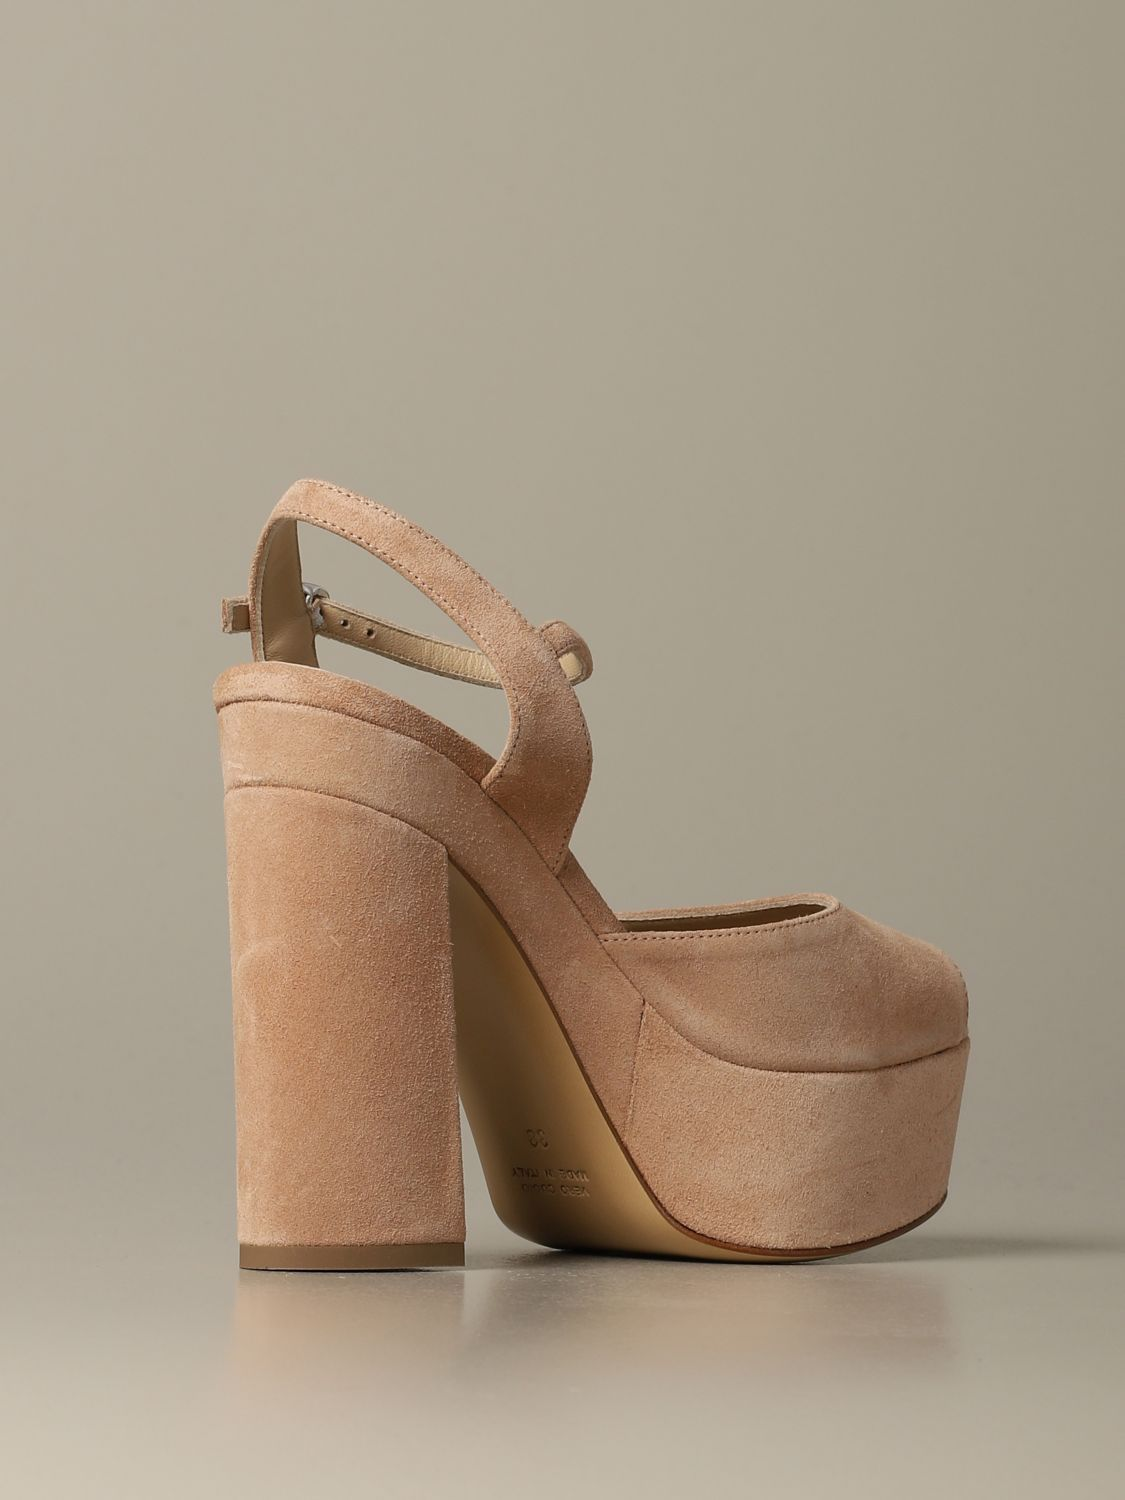 Shoes women Strategia pink 3